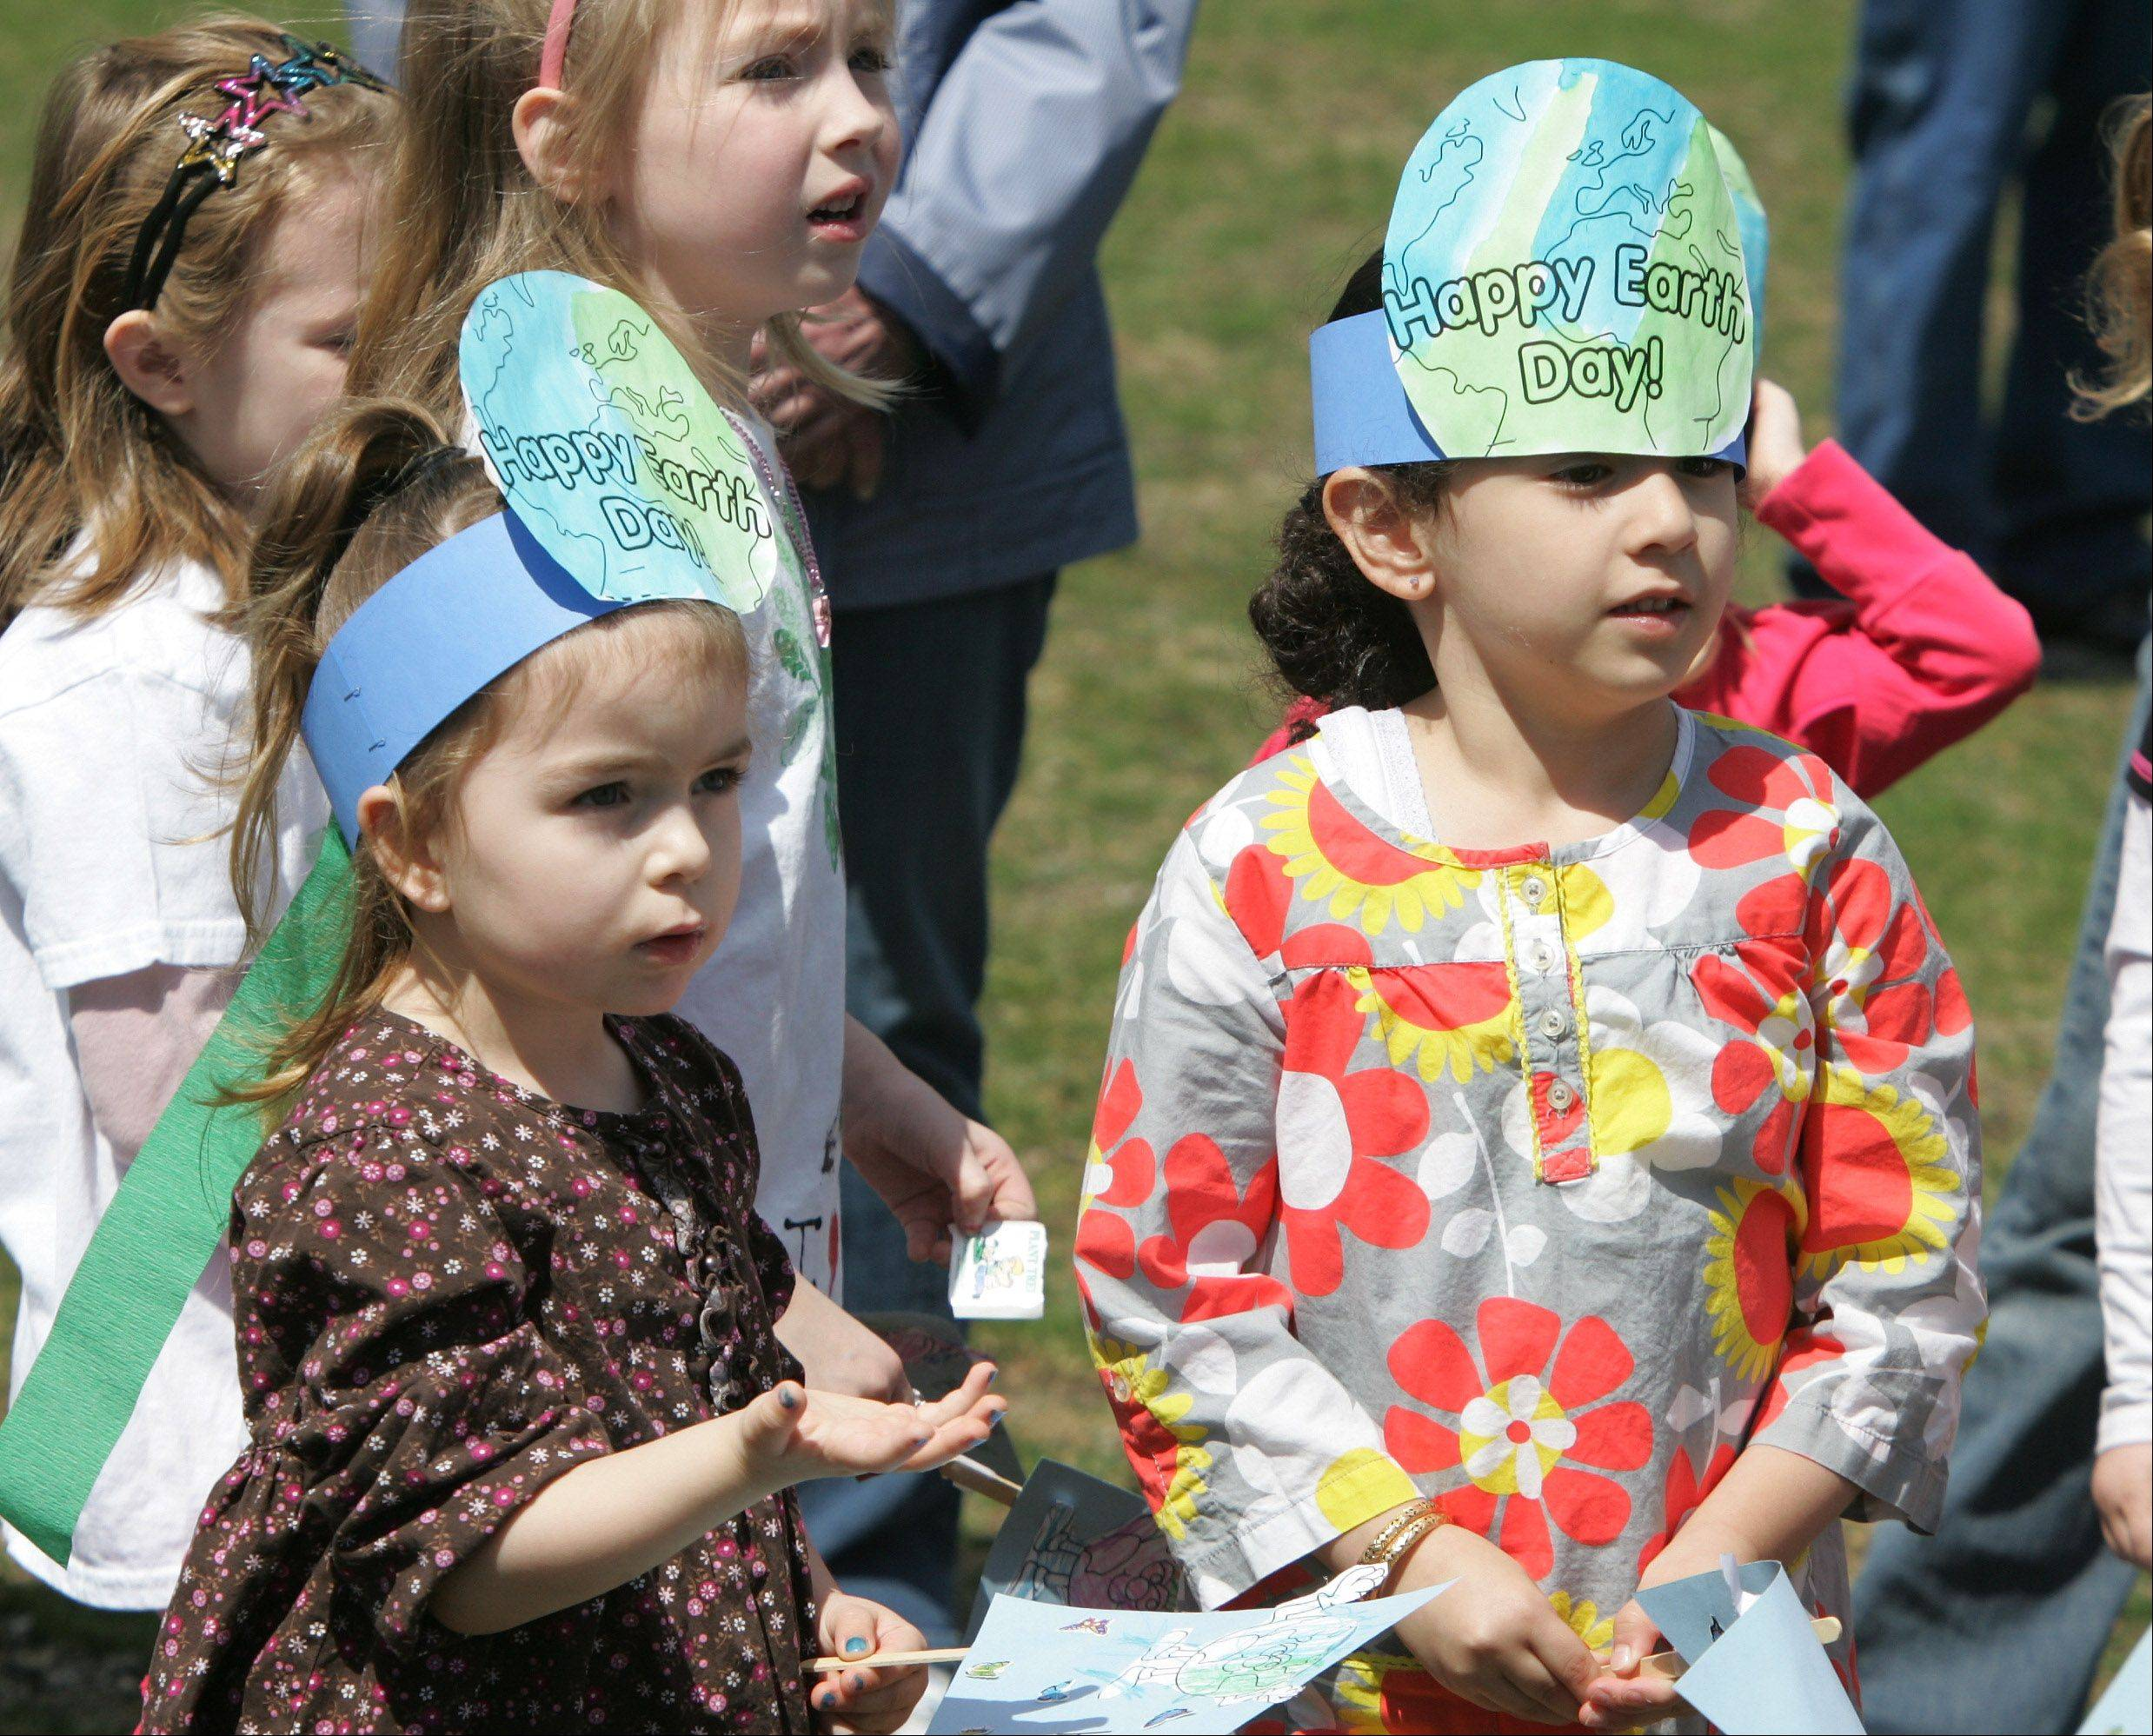 Preschoolers Dana Ustrnul, left, and Buthaina Rahaby, both 4, learn about growing trees during the Earth Day event at the Learning Center Preschool in the Mundelein Park District Monday. A white oak tree was planted and preschool children learned about Earth Day and Arbor Day.